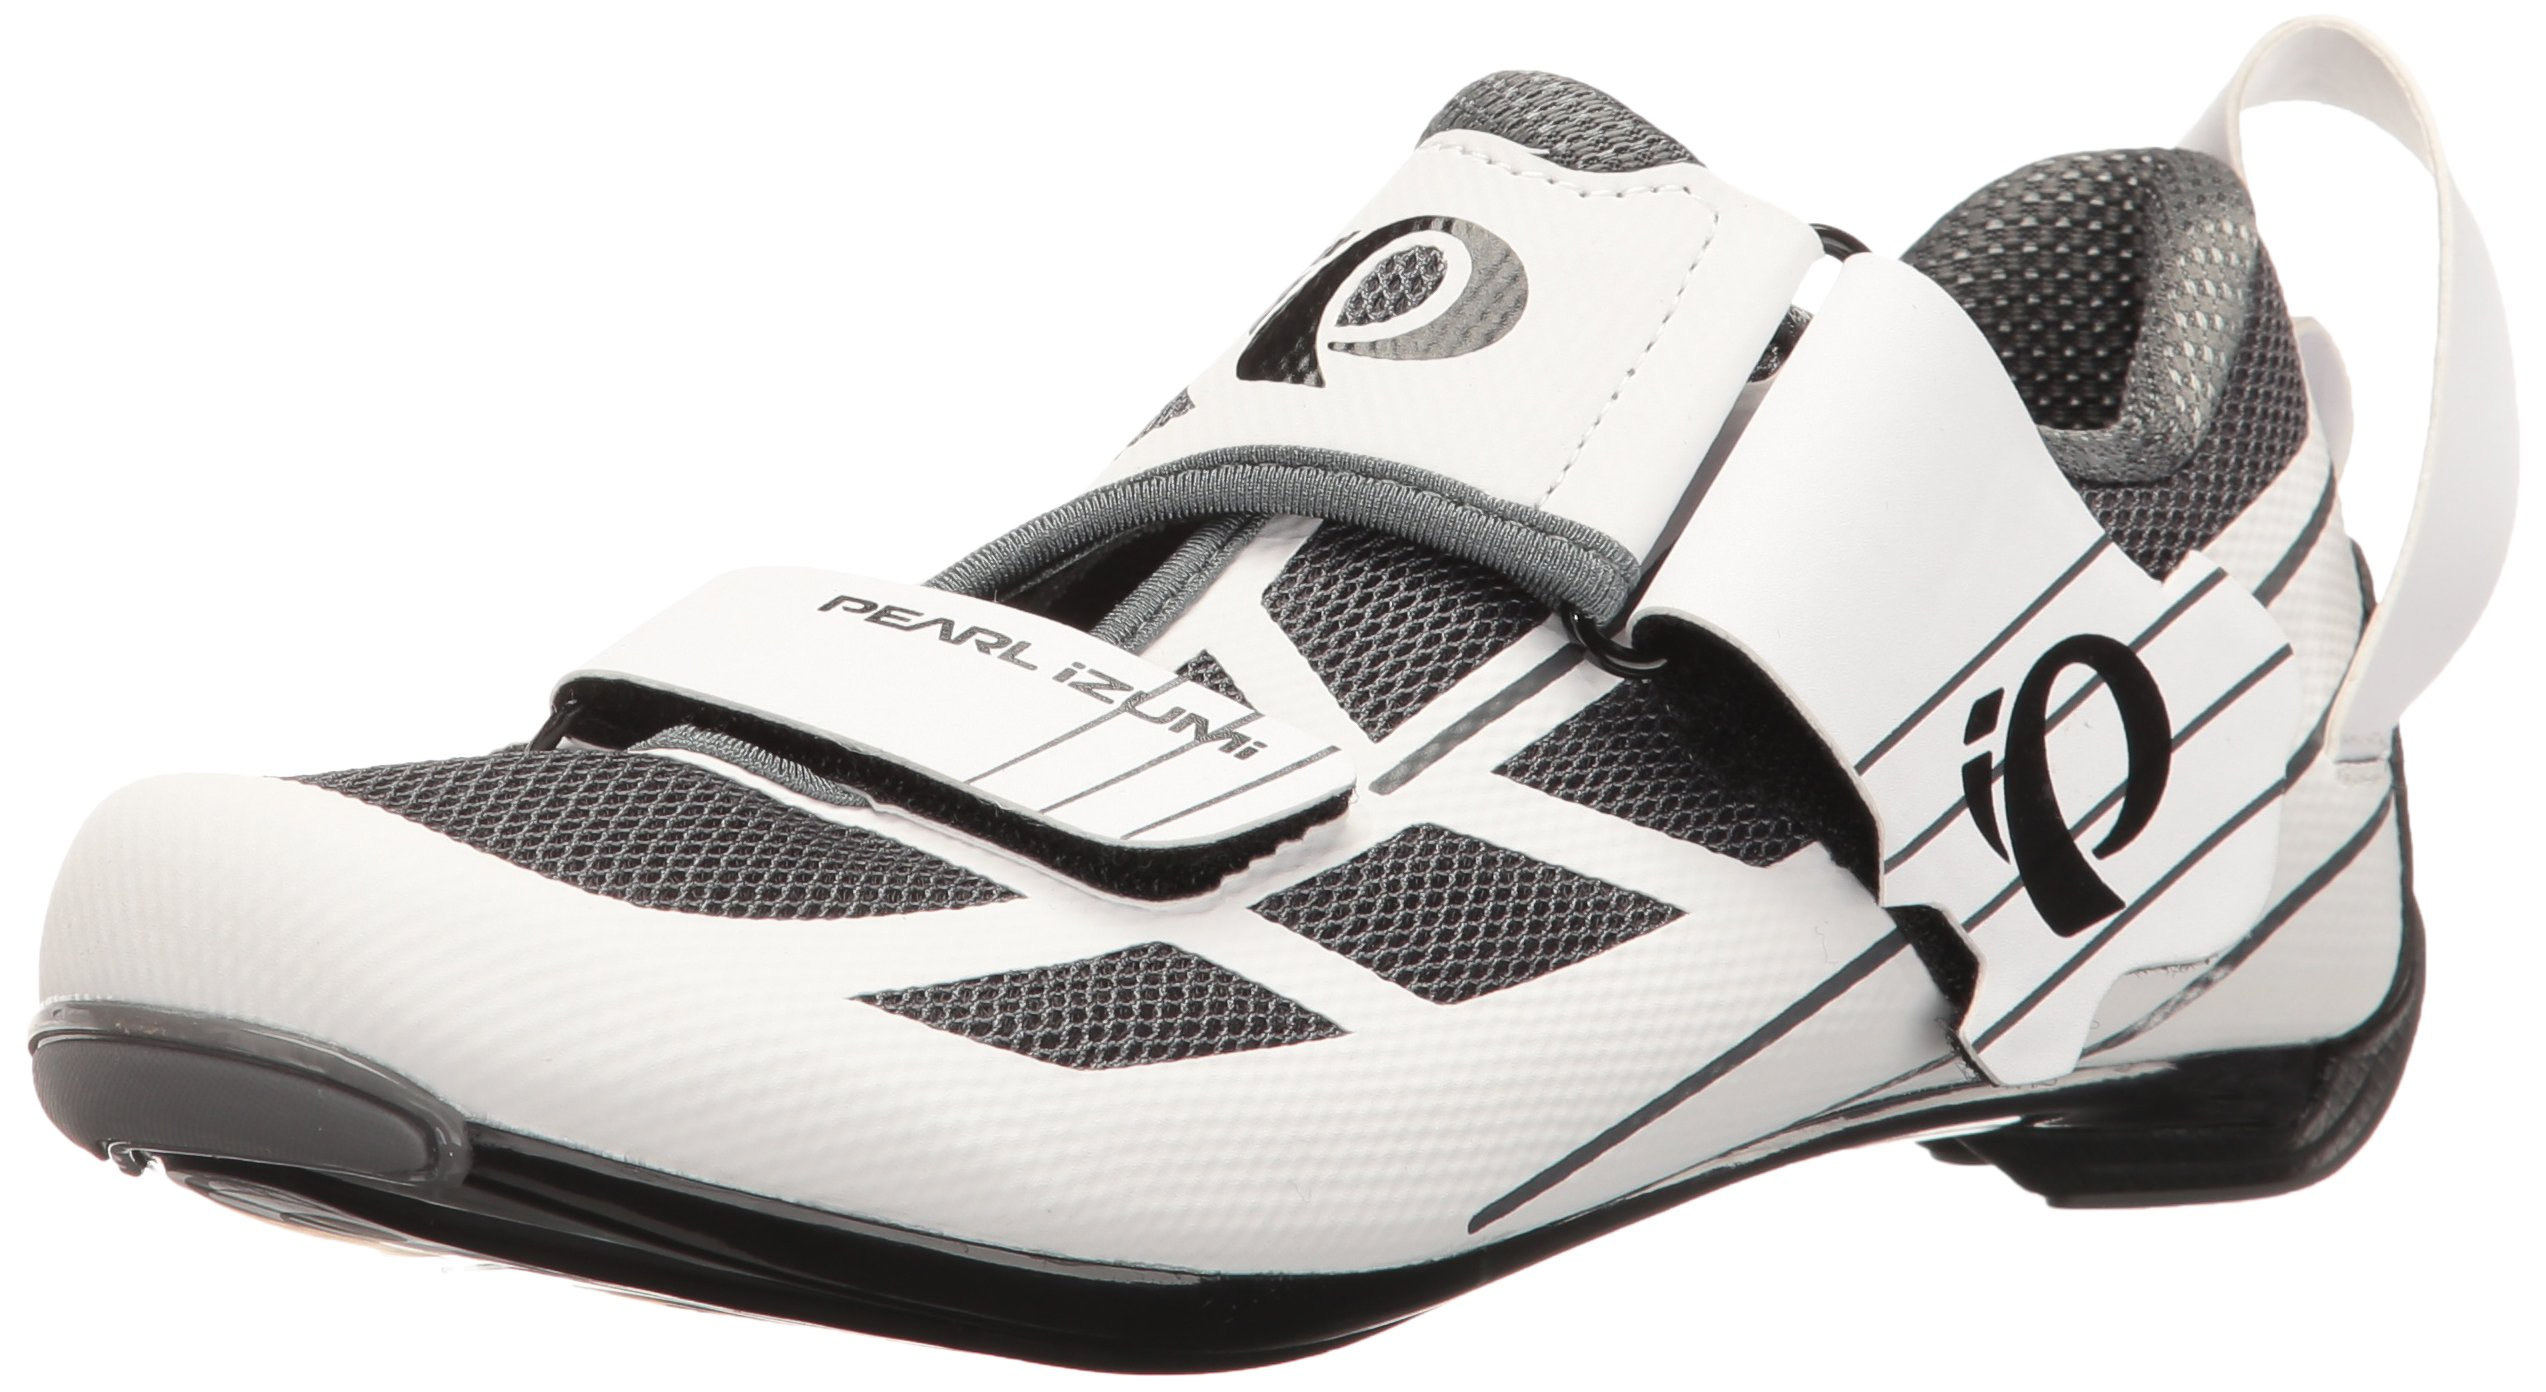 Pearl iZUMi Women's W Tri Fly Select V6 Cycling Shoe, White/Shadow Grey, 42 EU/10 B US by Pearl iZUMi (Image #1)